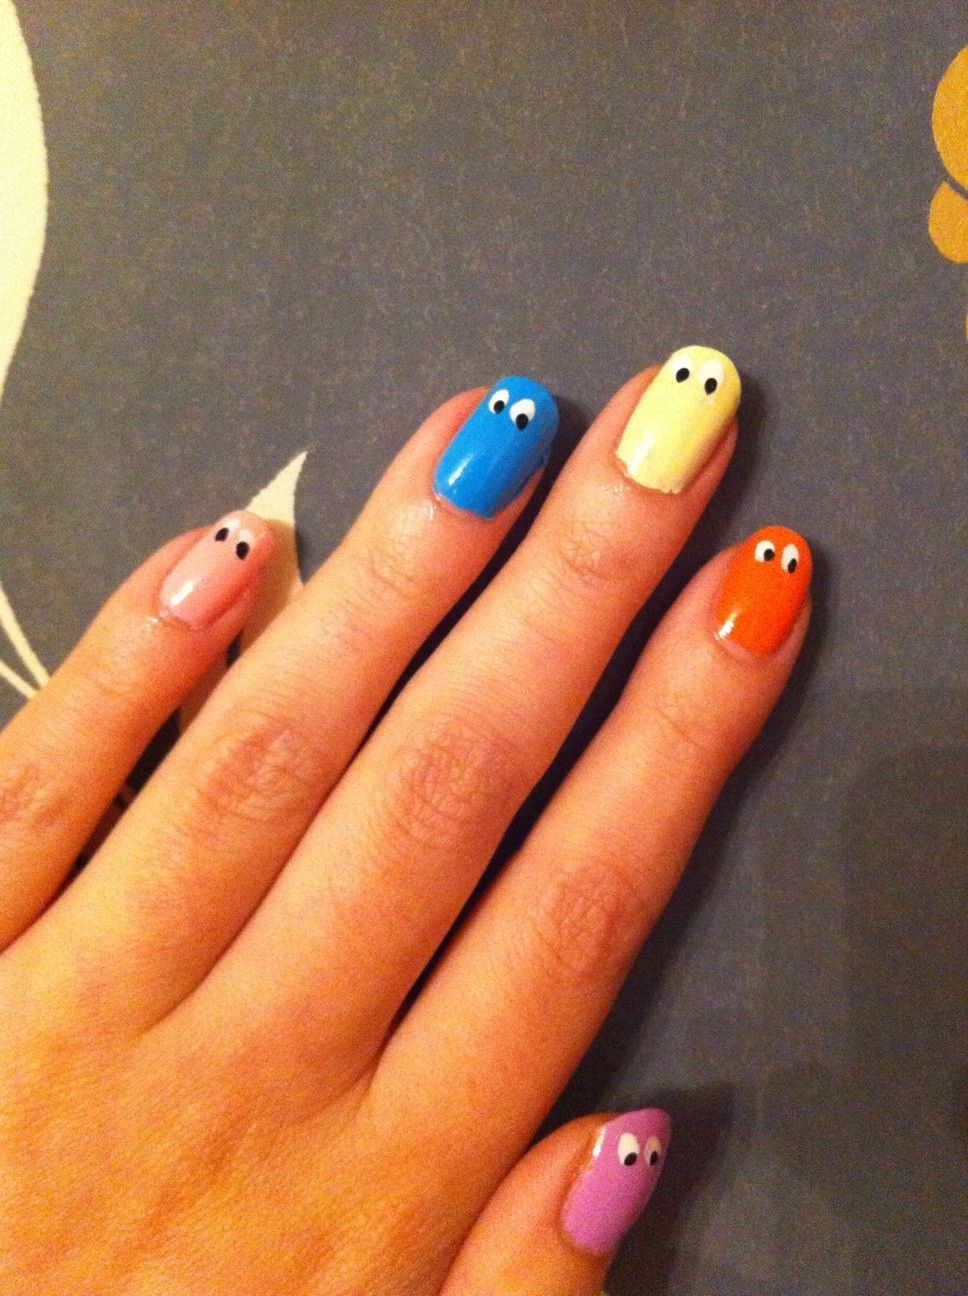 superhero nails - Google Search | Nails | Pinterest | Superhero ...